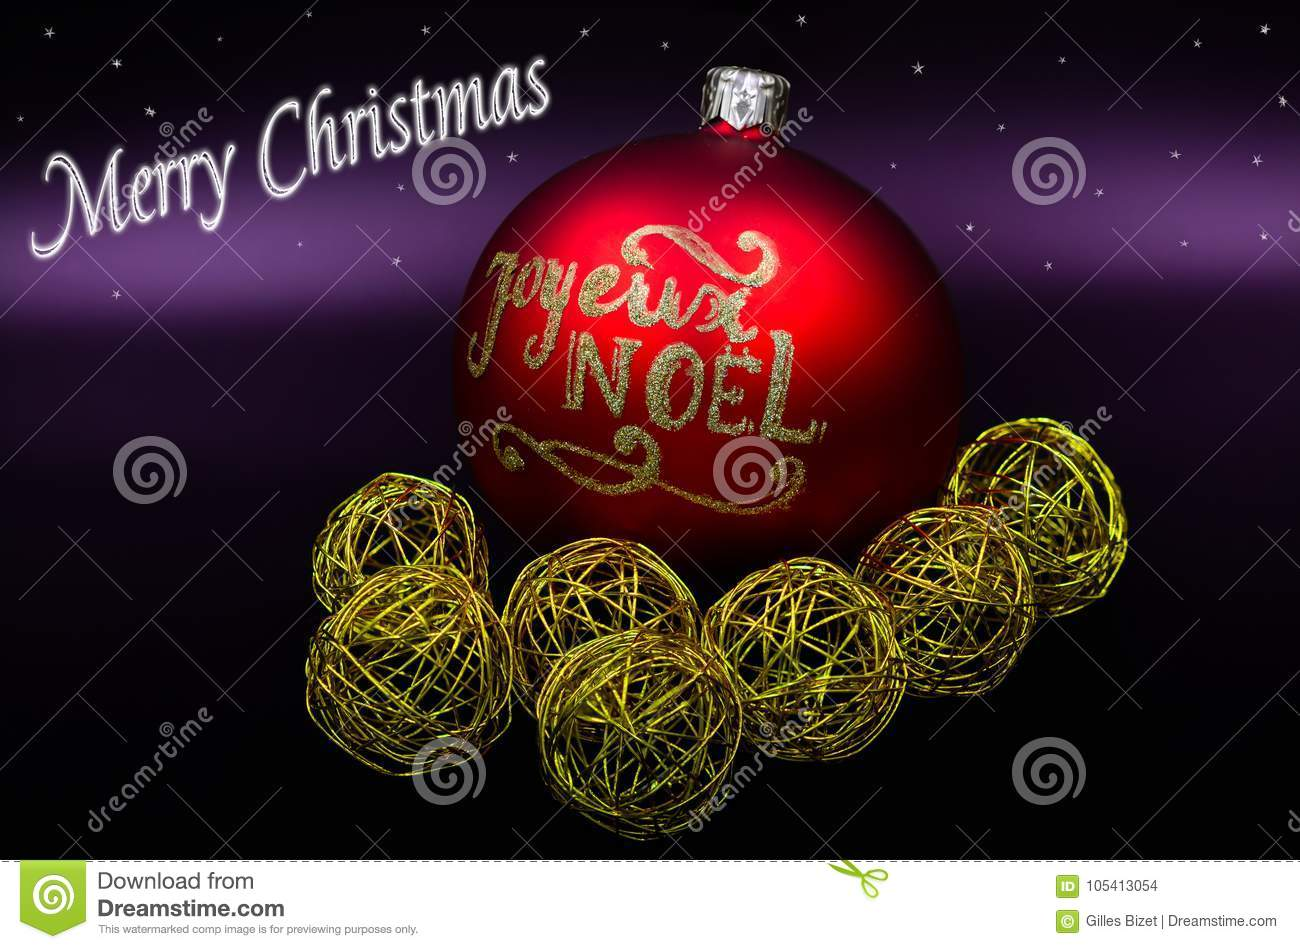 Merry Christmas sign and balls red and gold